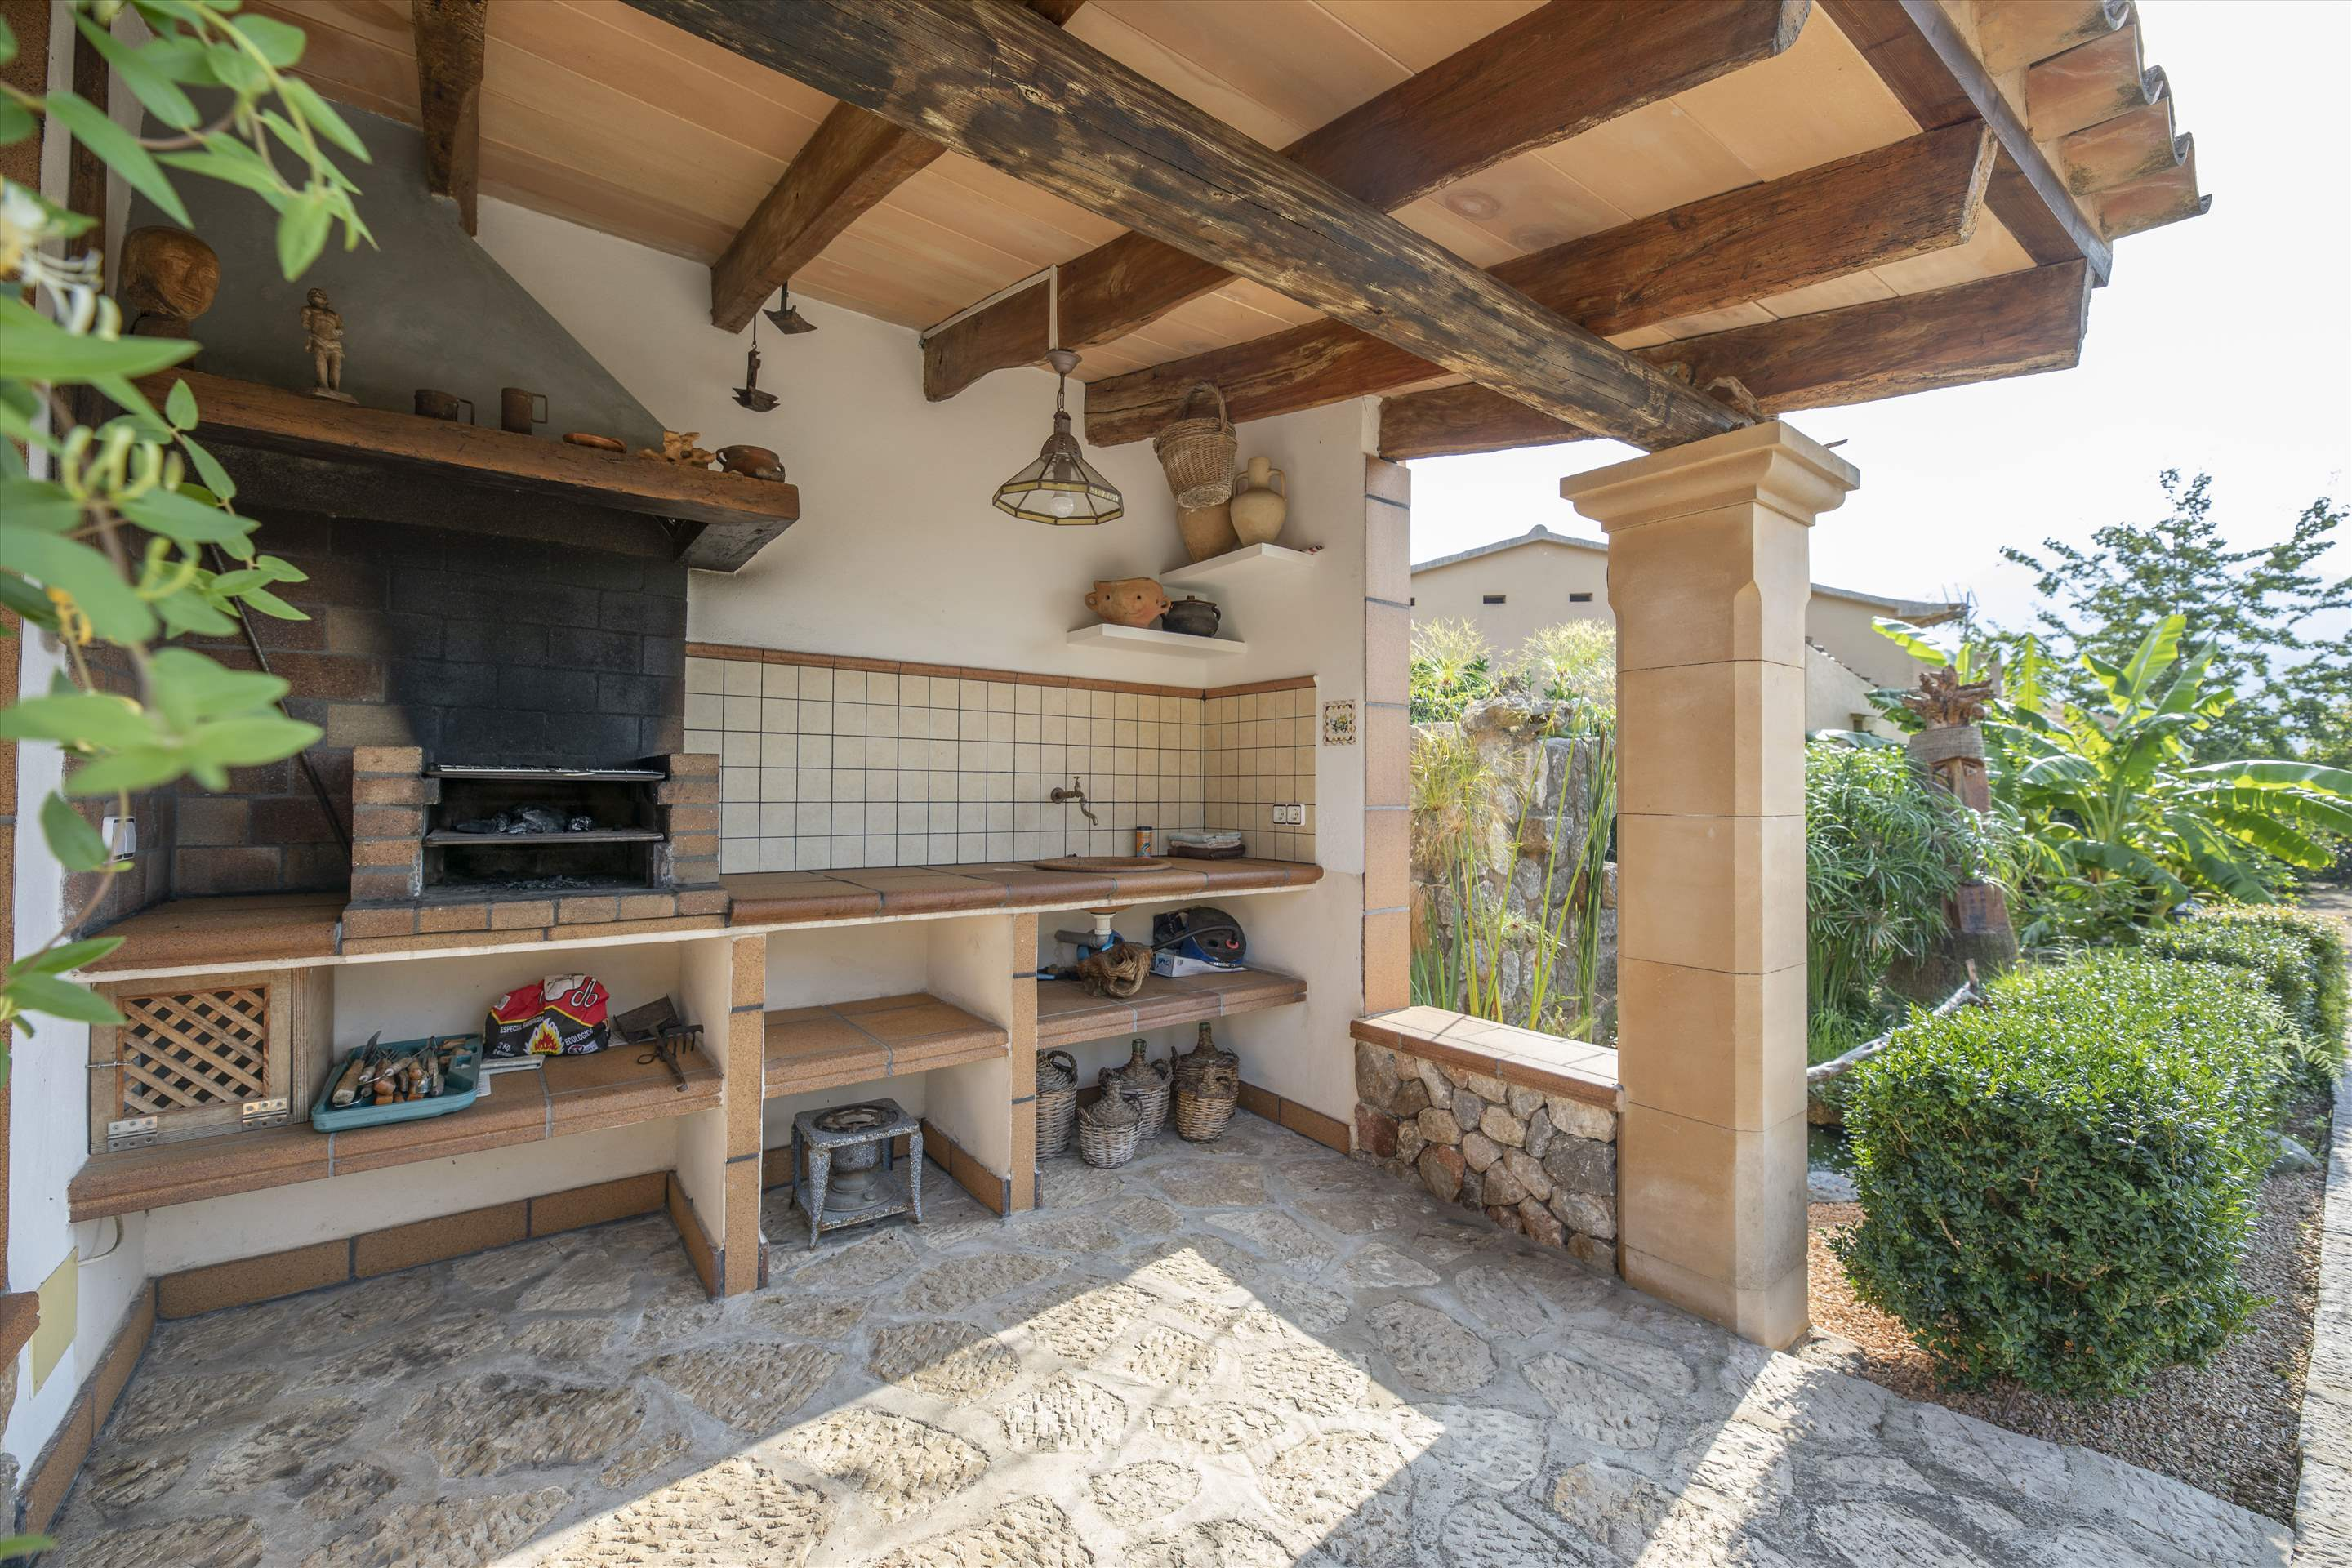 Sa Portella - SO1479, 3 bedroom villa in Soller & Deia, Majorca Photo #21